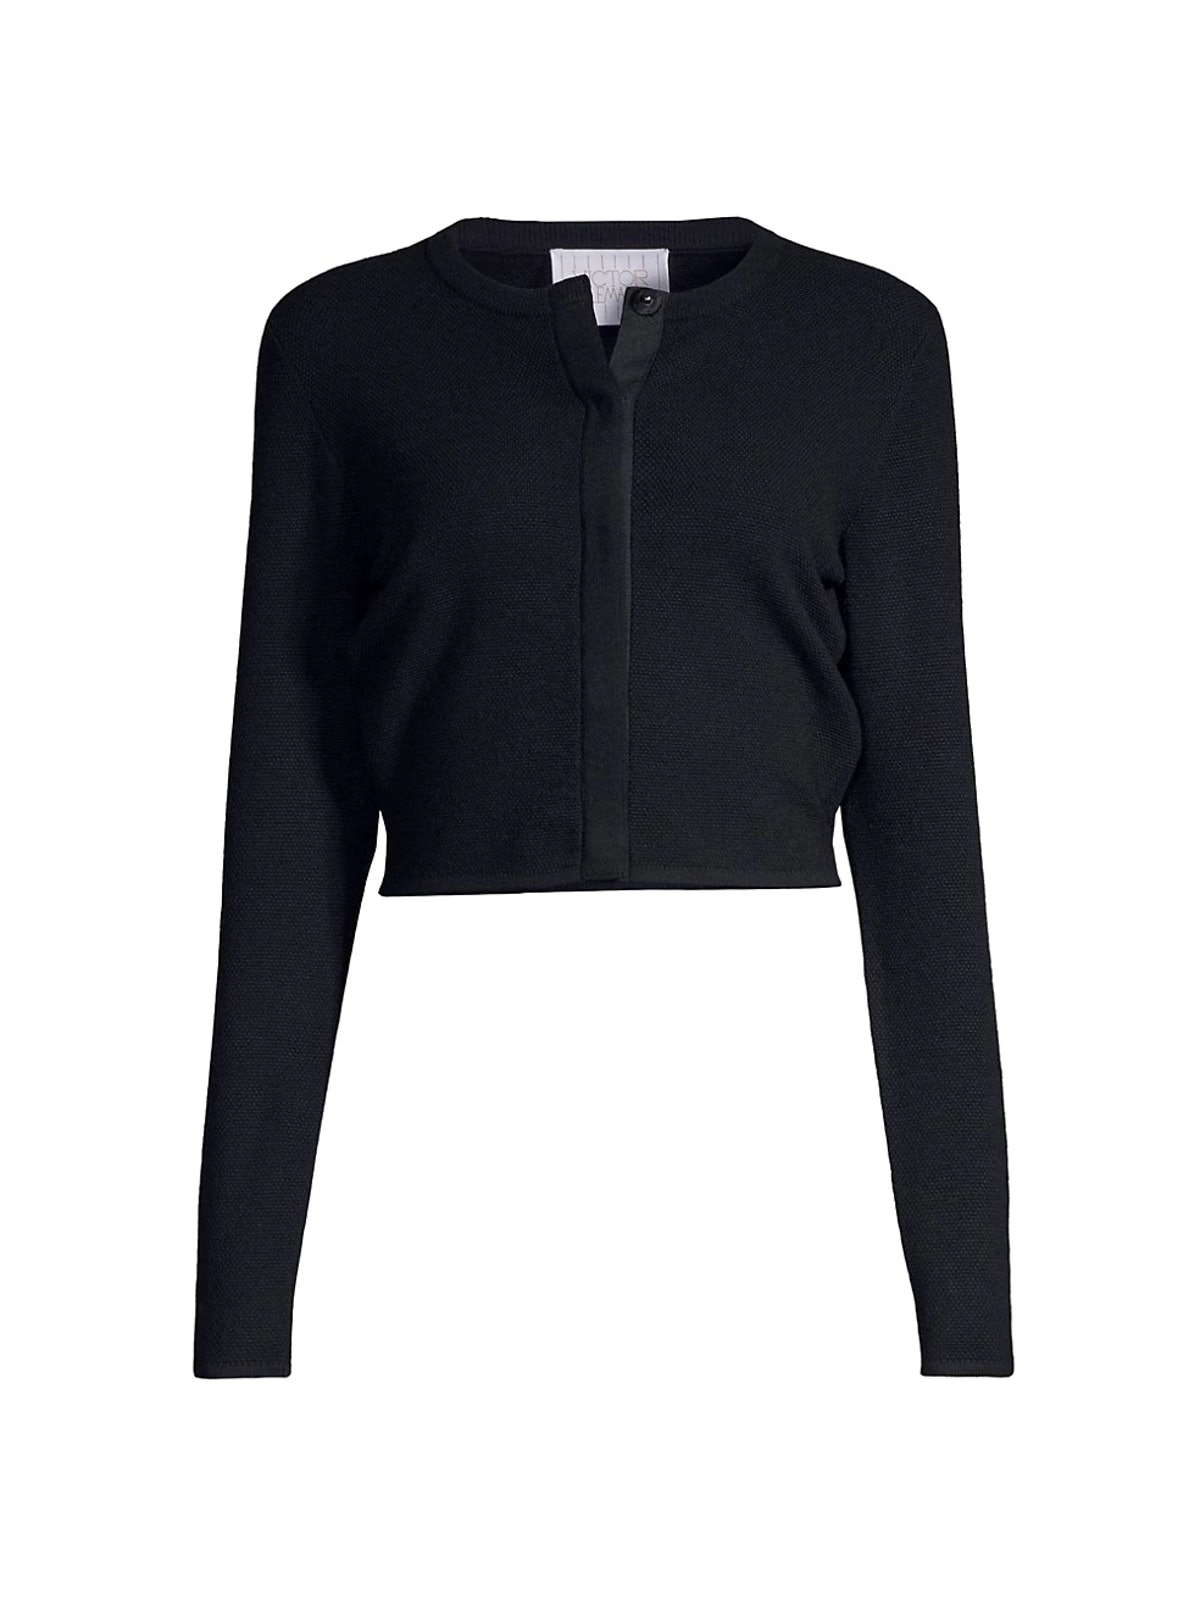 Black ribbed merino wool cardigan from VICTOR GLEMAUD, available on Saks Fifth Avenue.